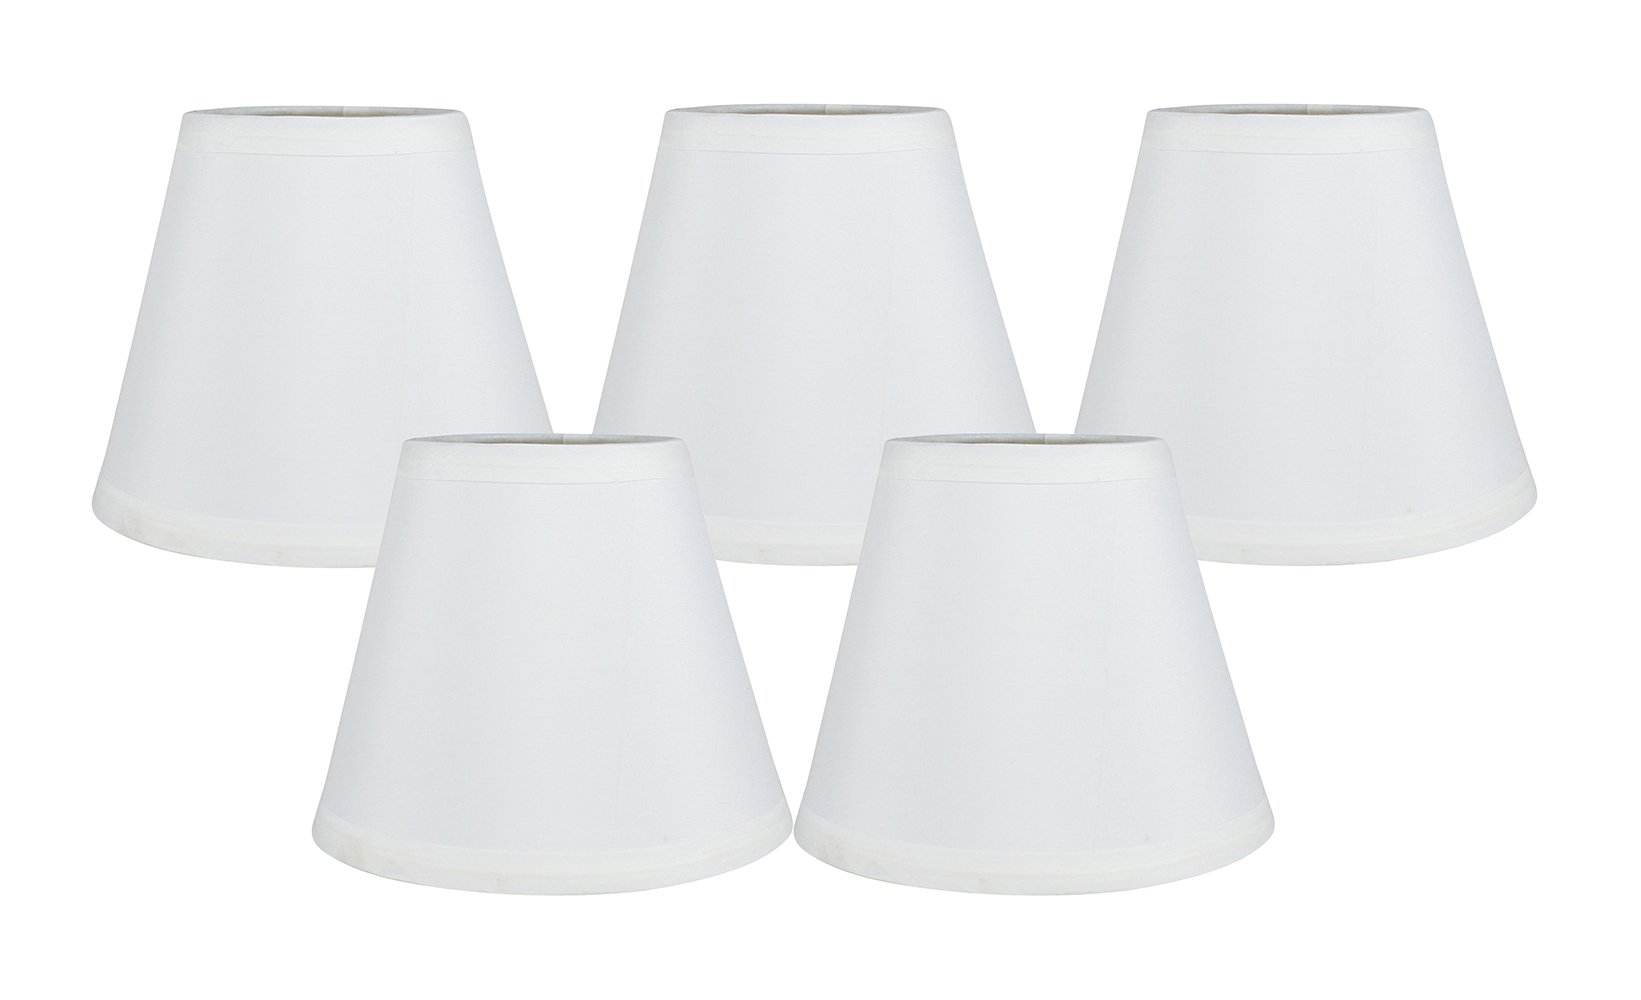 Meriville Set of 5 Off White Clip On Chandelier Lamp Shades, 3.5-inch by 6-inch by 5-inch